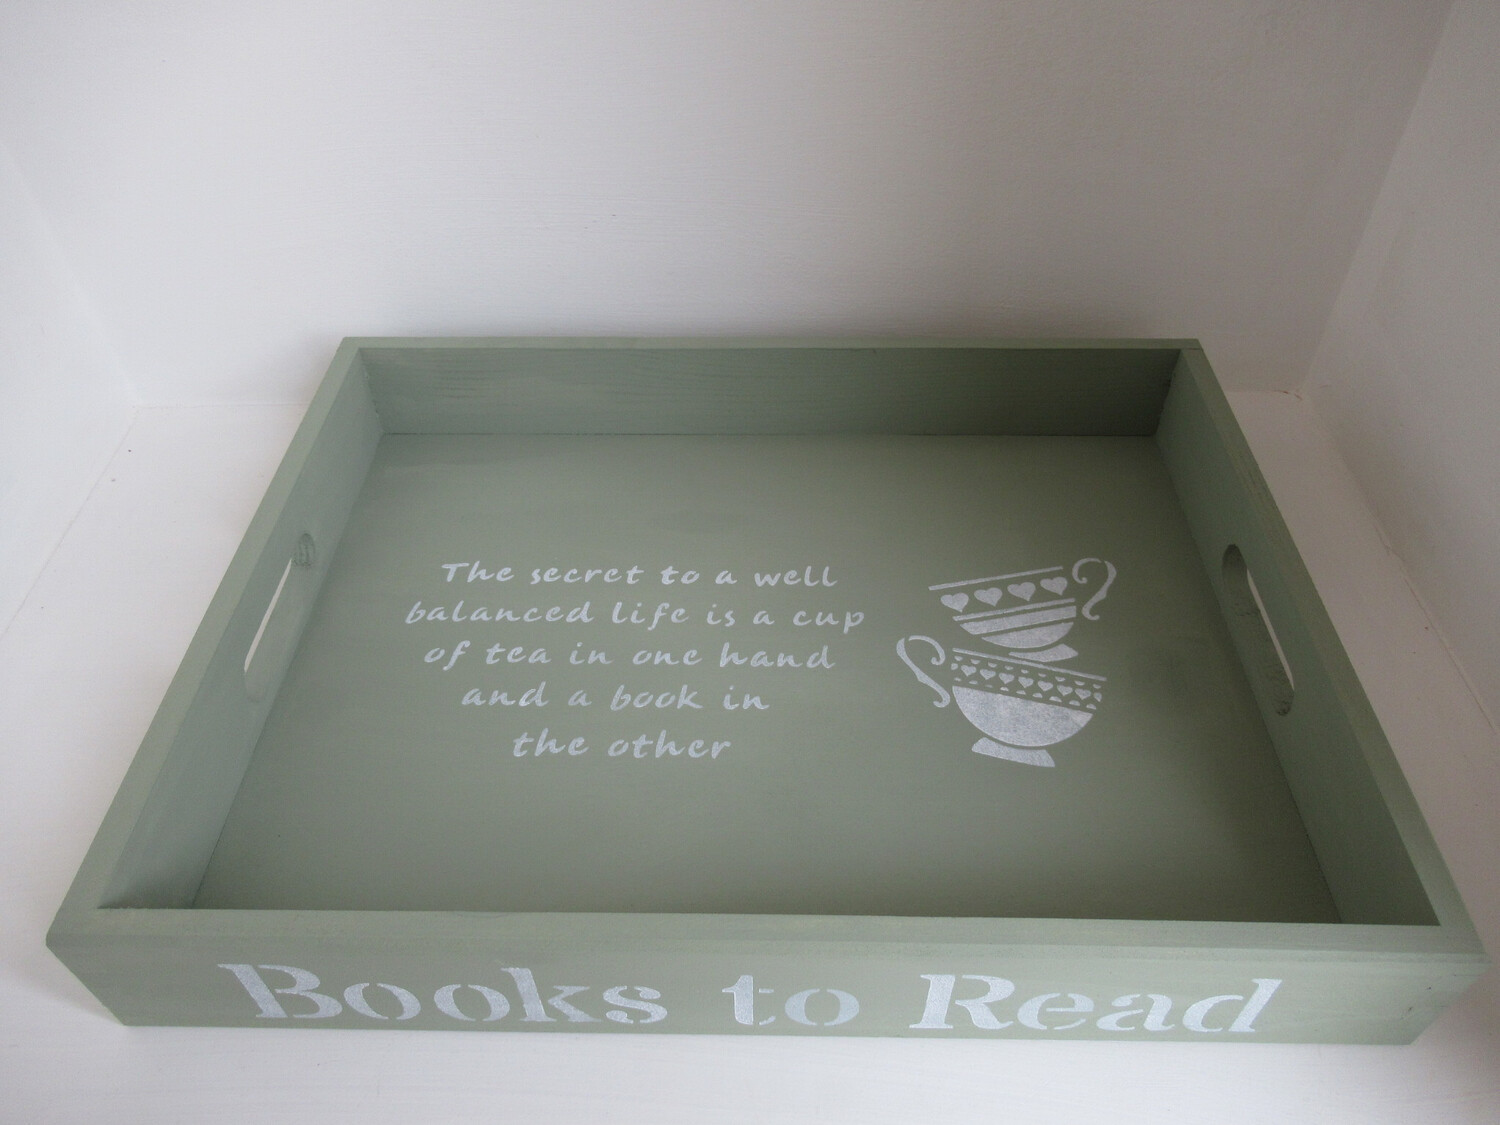 Books To Read decorative shabby chic wooden tray  Free UK P&P